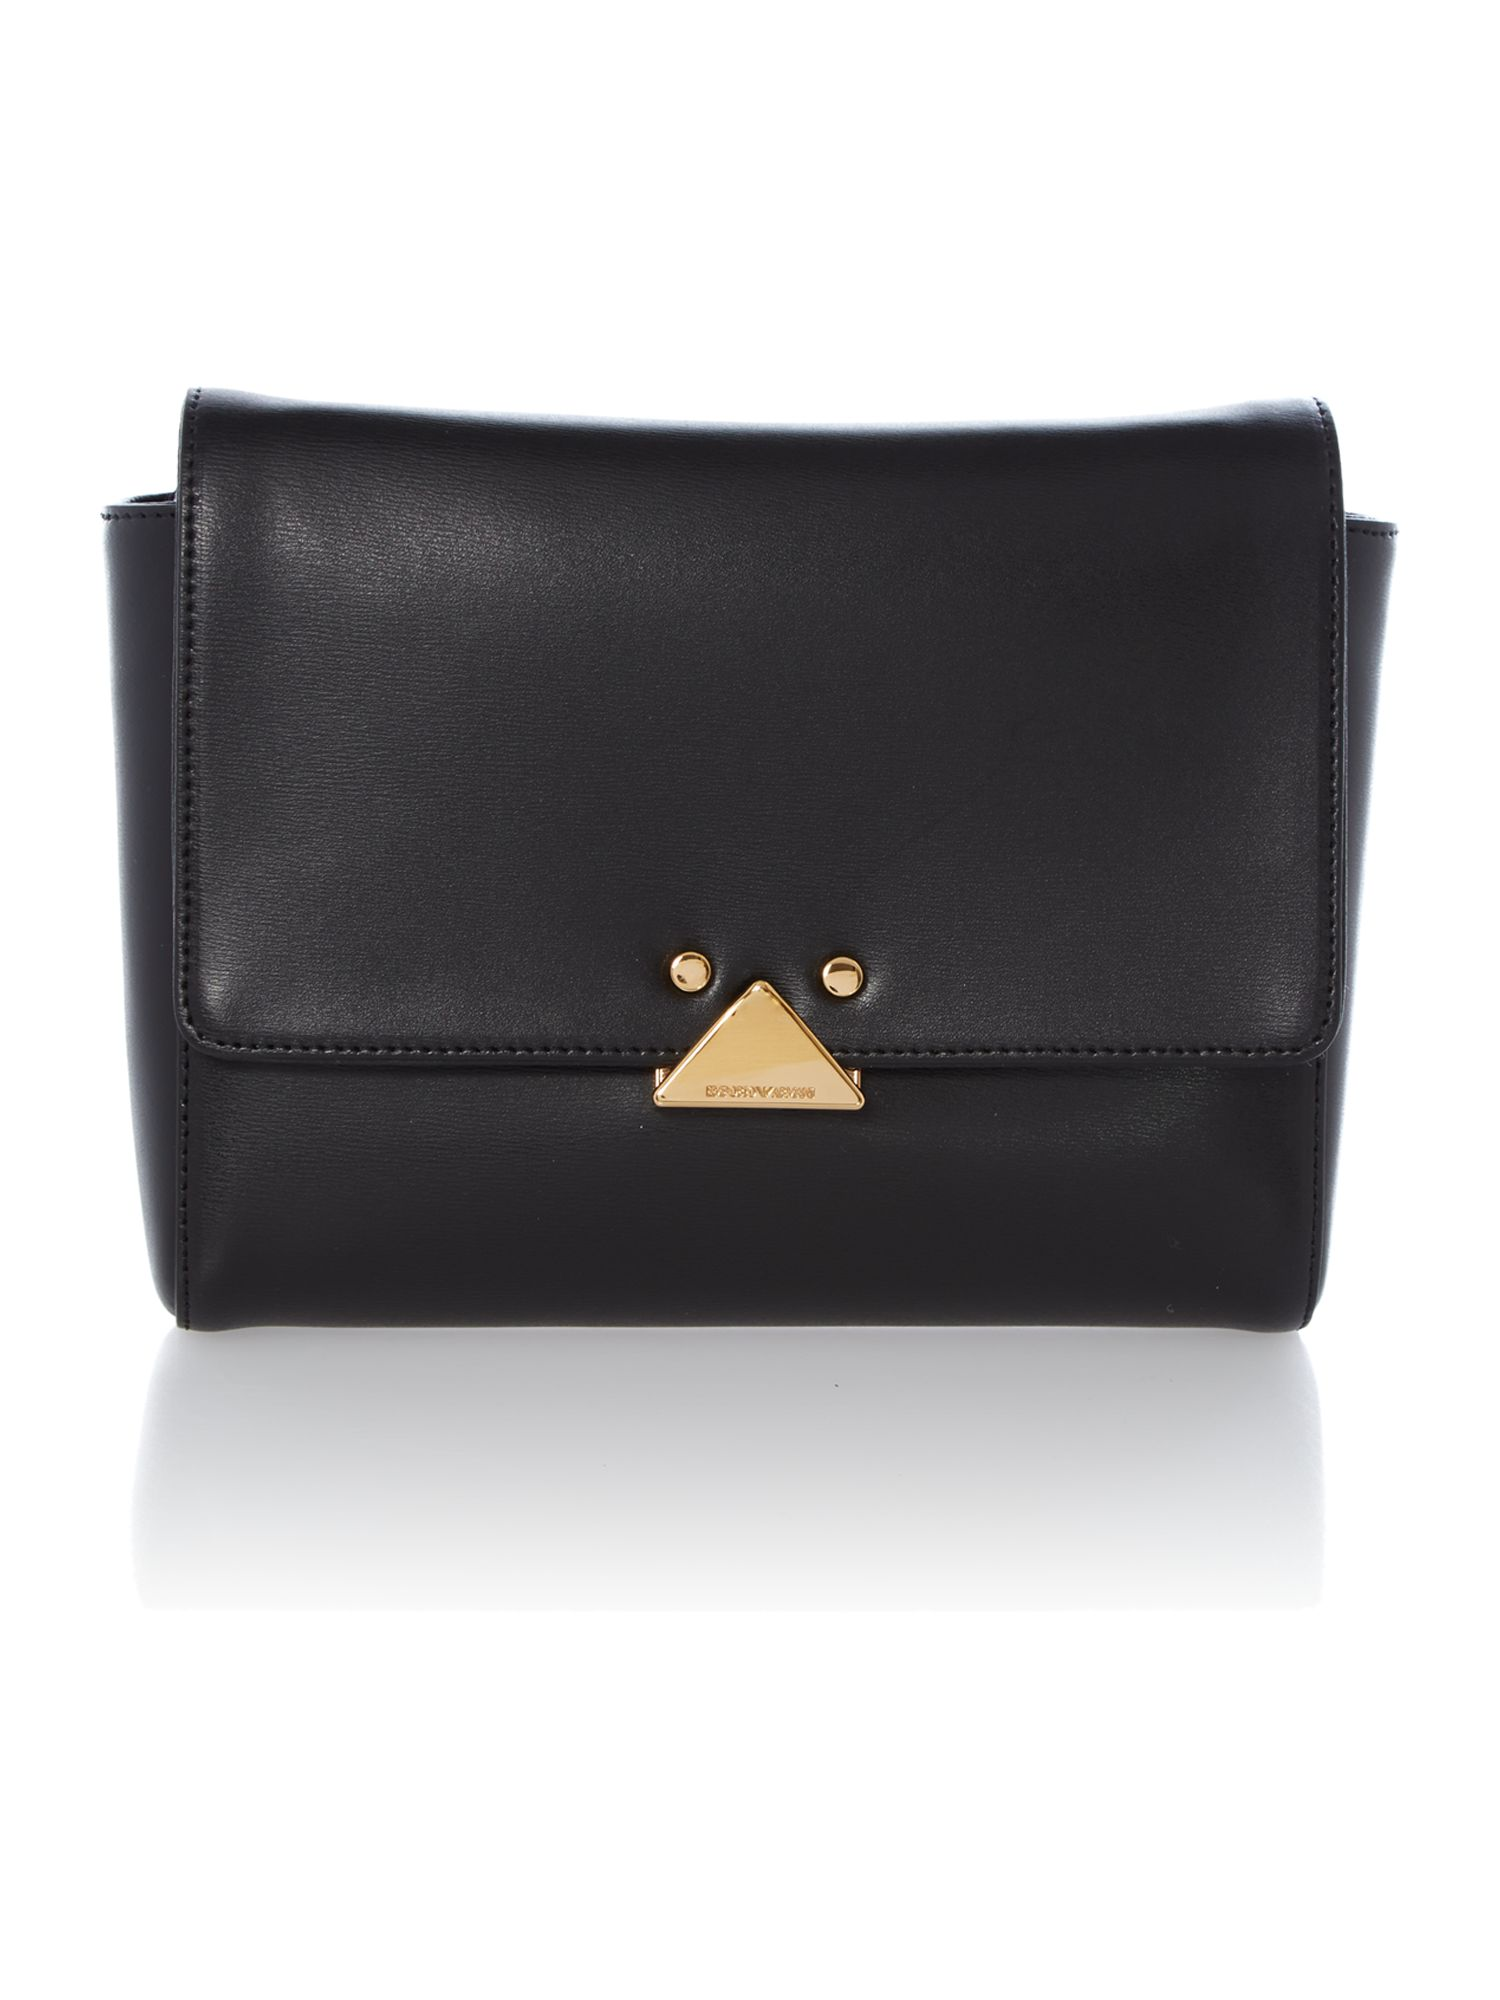 Black leather flapover crossbody bag